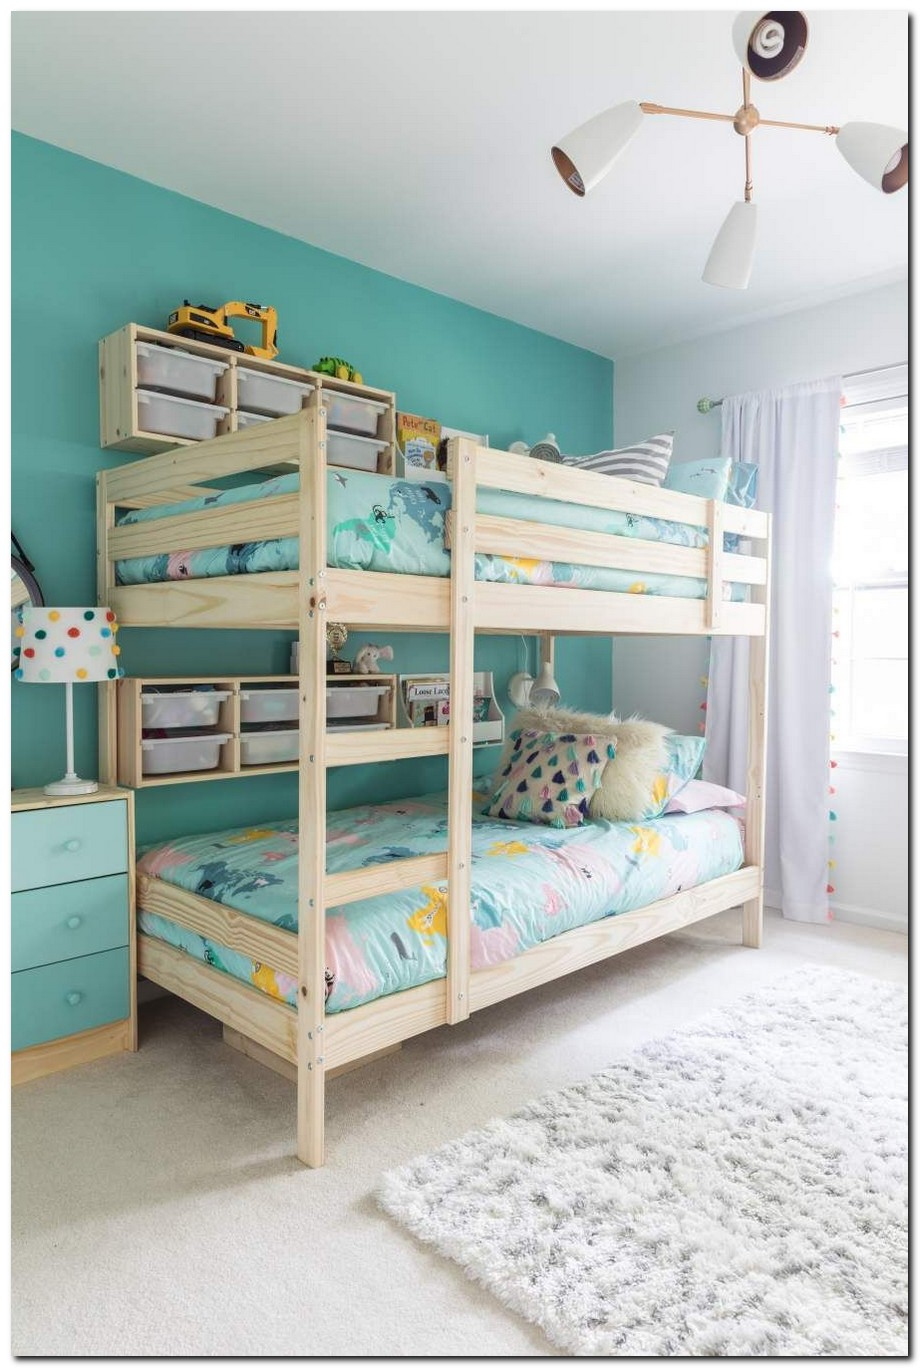 How to choose the most suitable bunk beds for kids 4